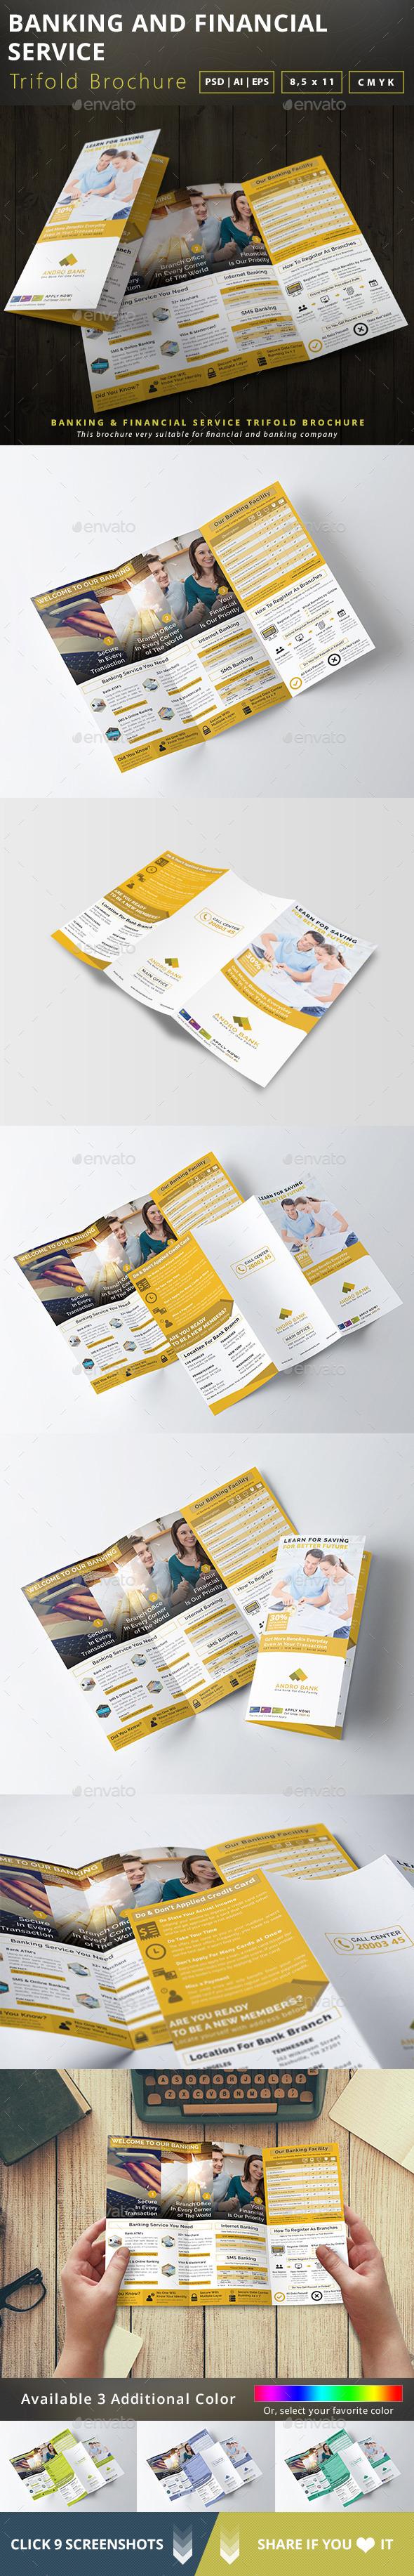 Banking and Financial Service Trifold Brochure - Brochures Print Templates